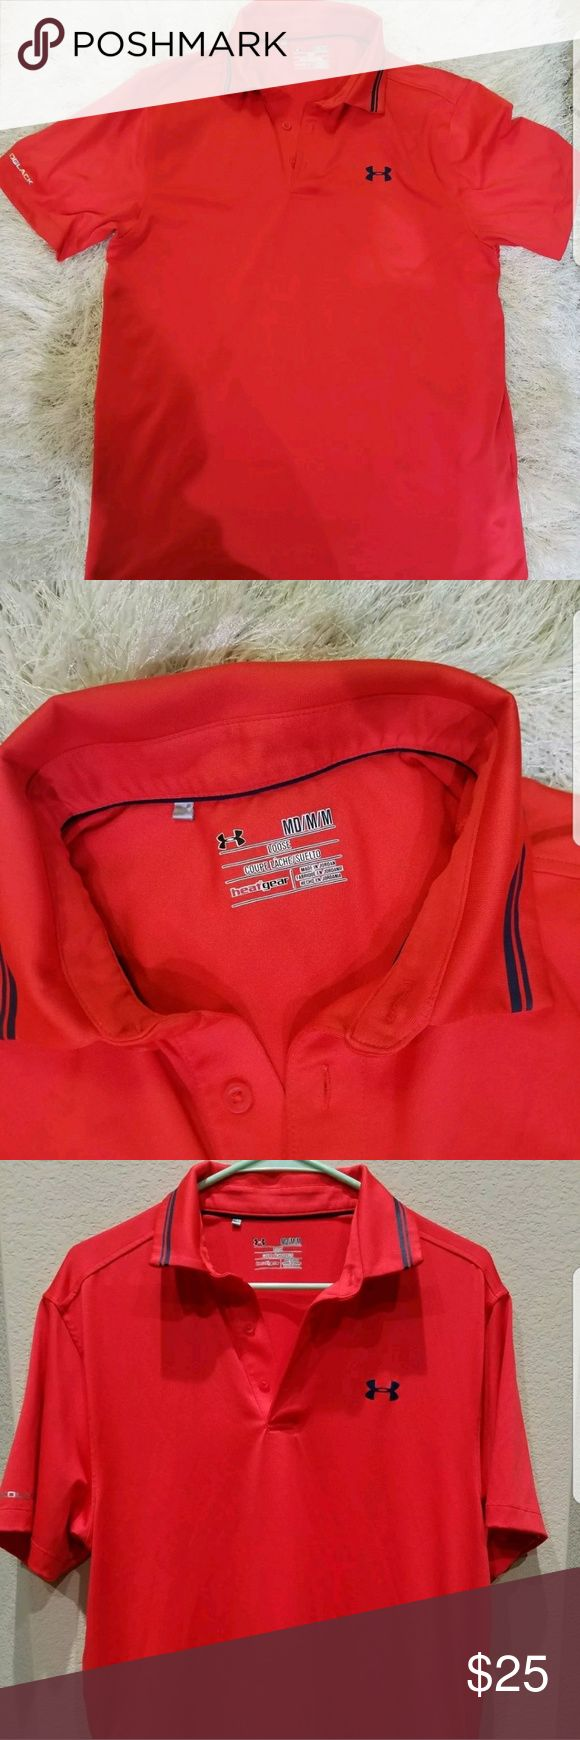 Under Armour Men's Heat Gear Loose Red Polo Shirt Under Armour Men's Heat Gear Loose Red Polo Shirt M Medium Coldblack   Condition - Preowned in excellent condition  Size Medium  Color Red   Loose fit style, heat gear eith cold black labeled on right arm.   All items are packaged with care.   Be sure to check out my other Under Armour listings! Under Armour Shirts Polos